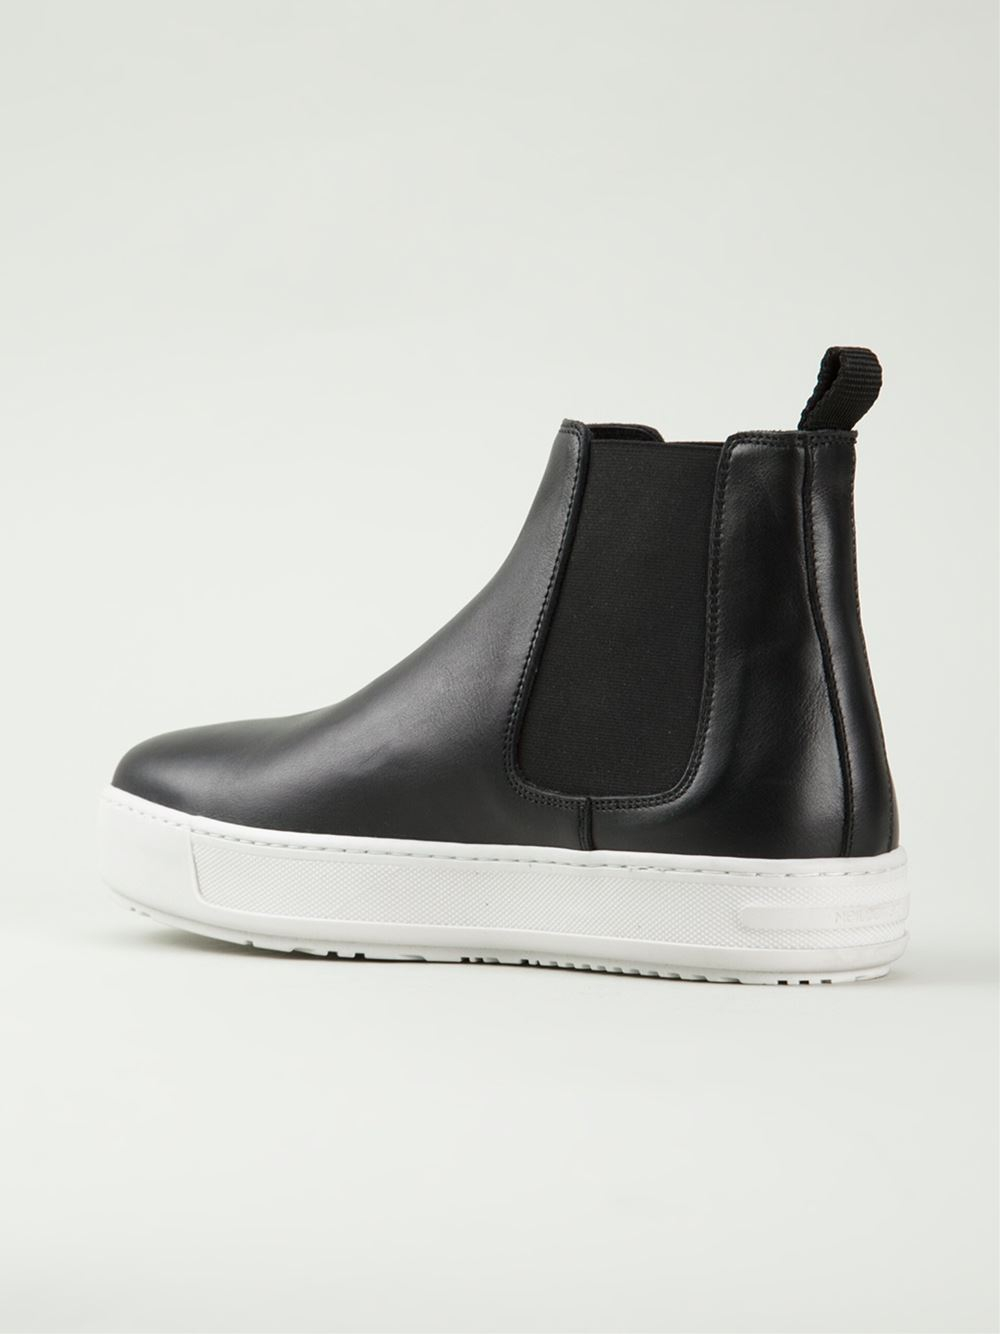 lyst neil barrett sneaker leather chelsea boots in black. Black Bedroom Furniture Sets. Home Design Ideas